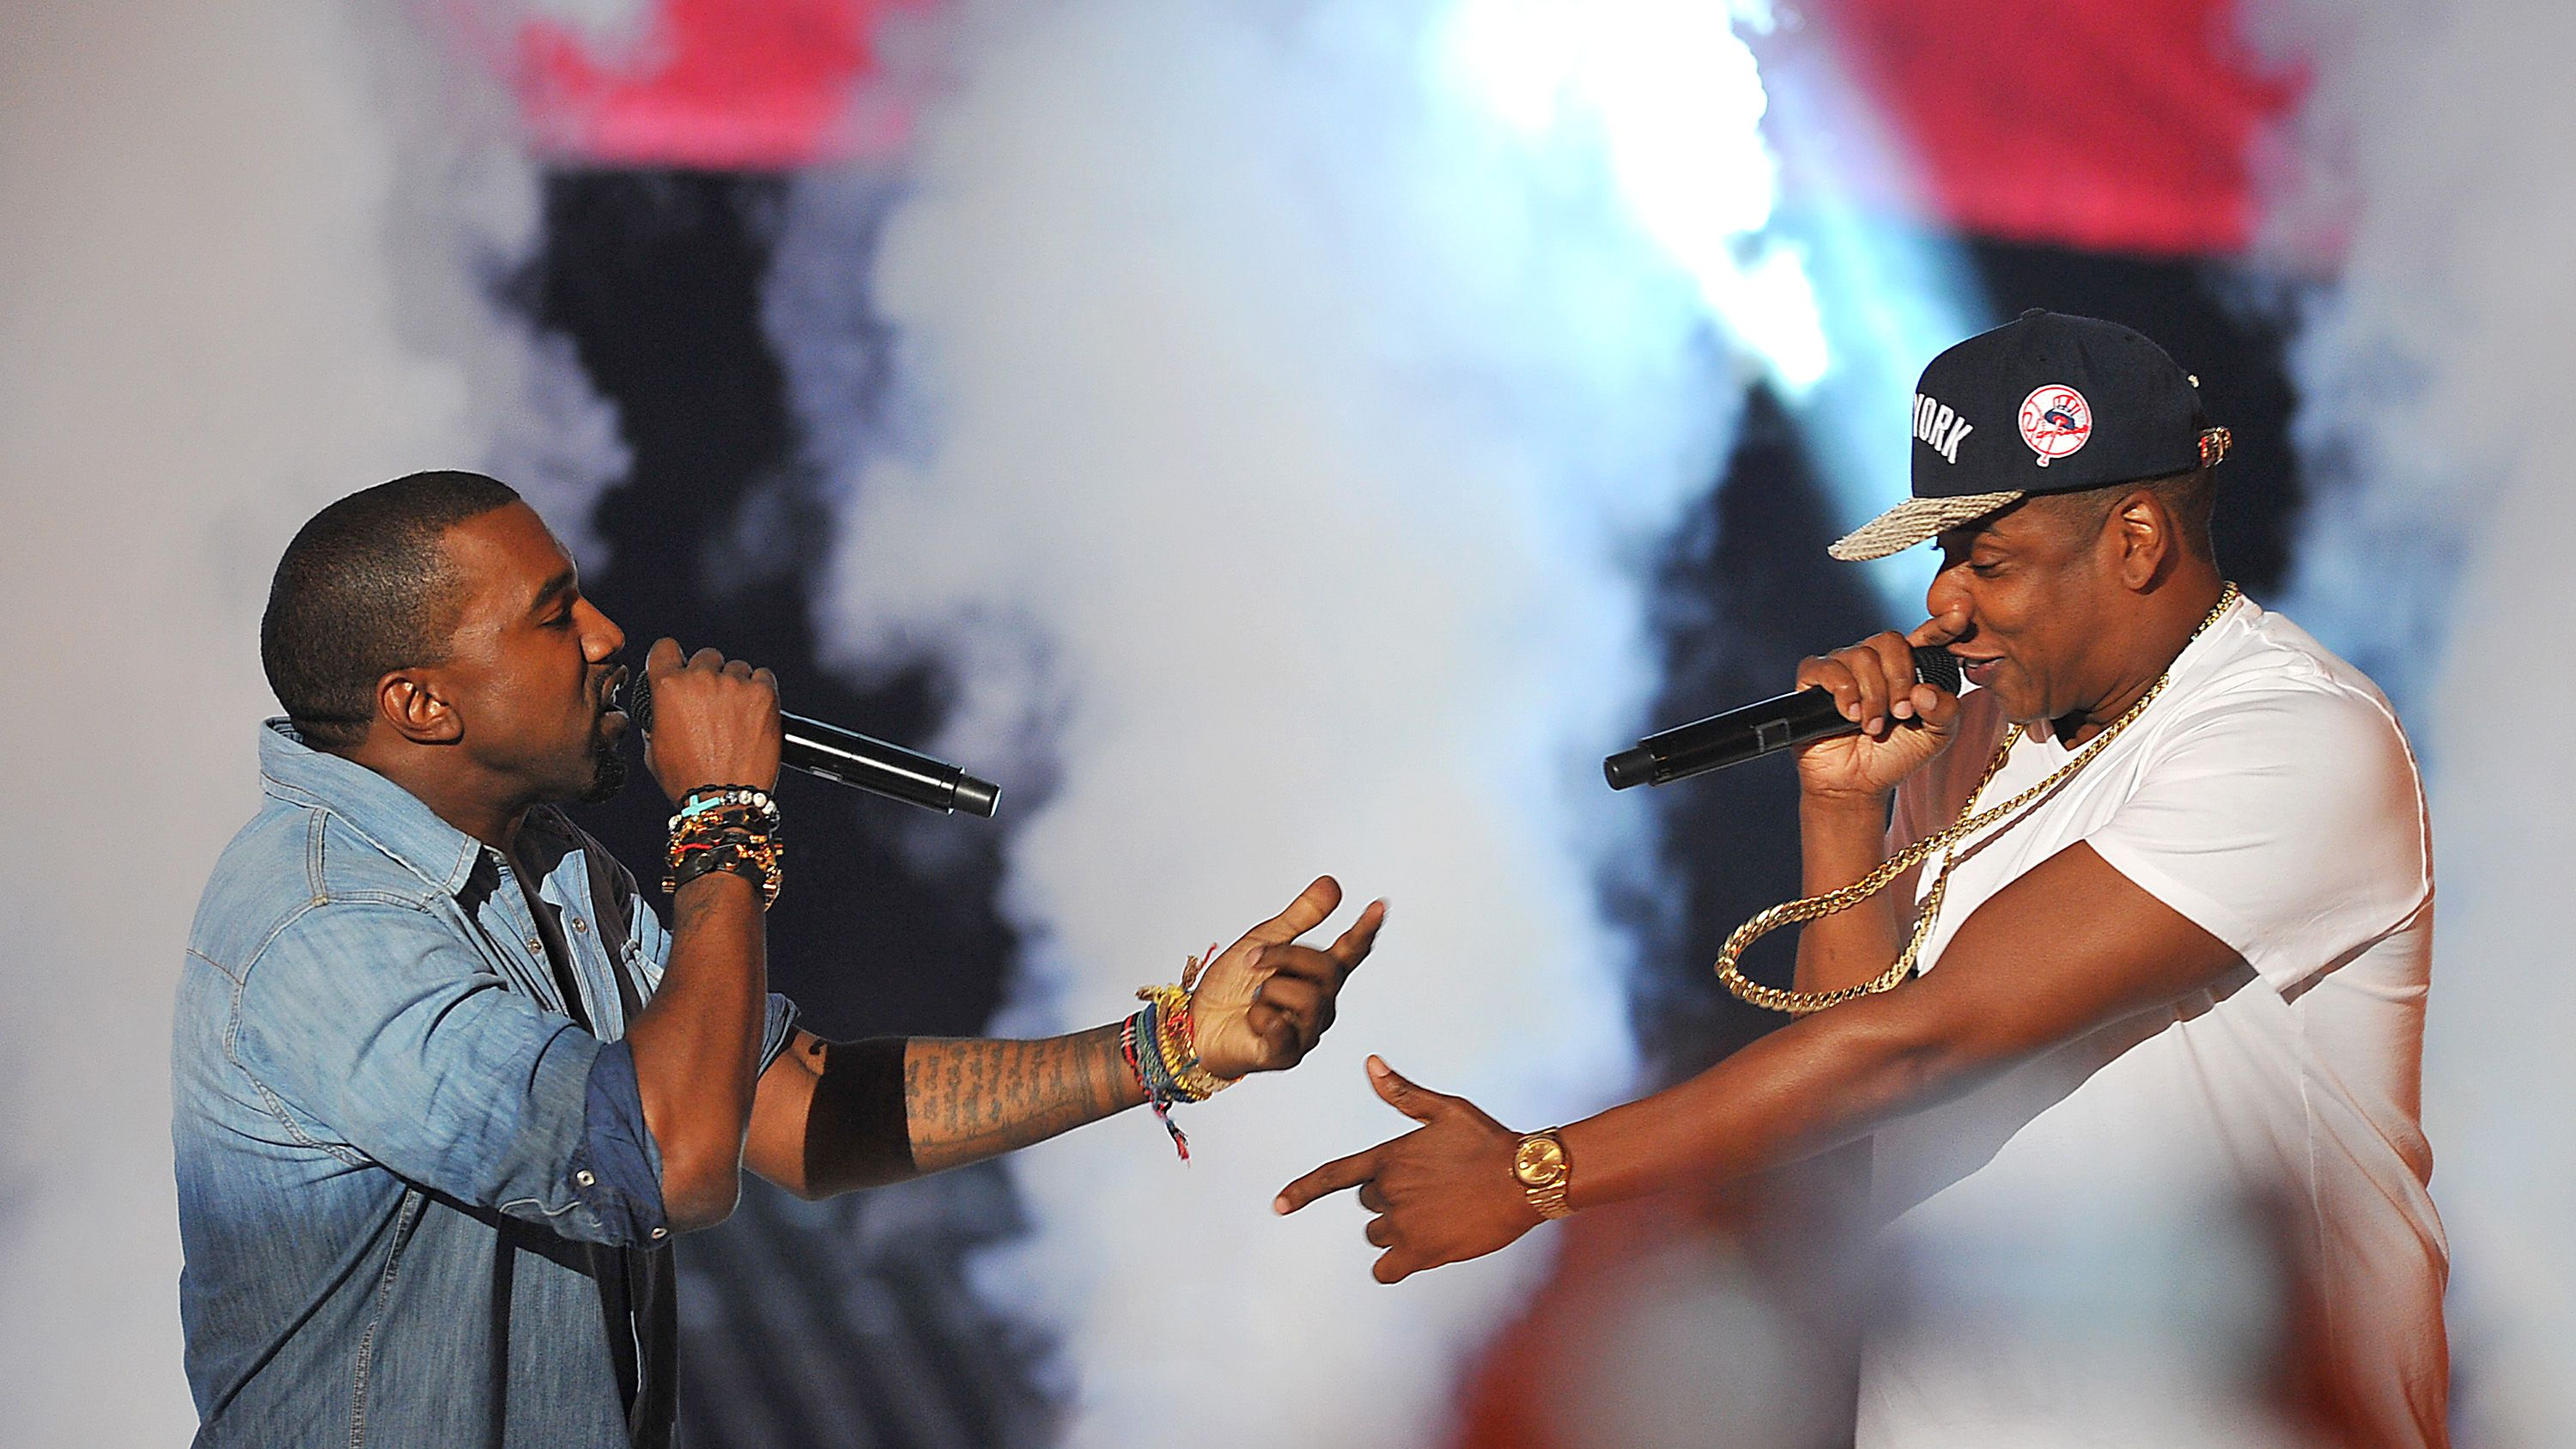 Jay-Z and Kanye West Planning Meeting To End Feud